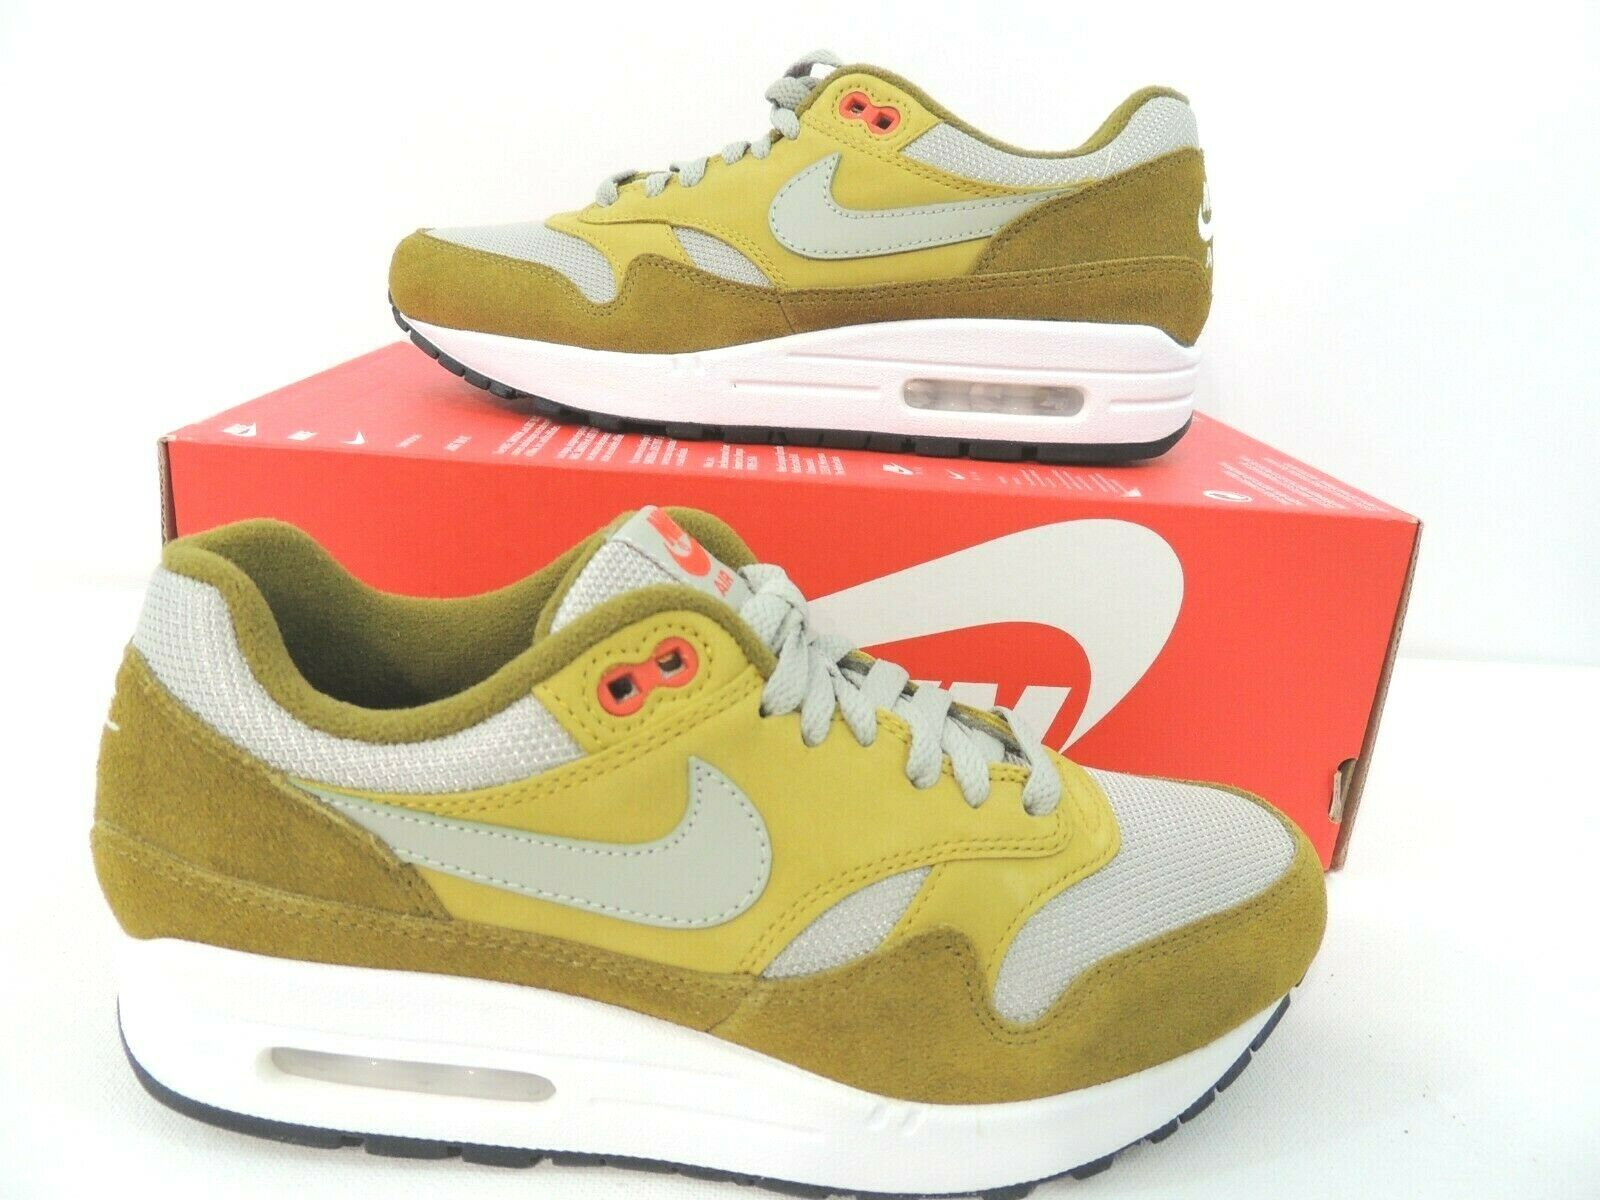 Nike Air Max 1 Premium Retro Green Curry Olive Flak Peat Moss Red 908366-300